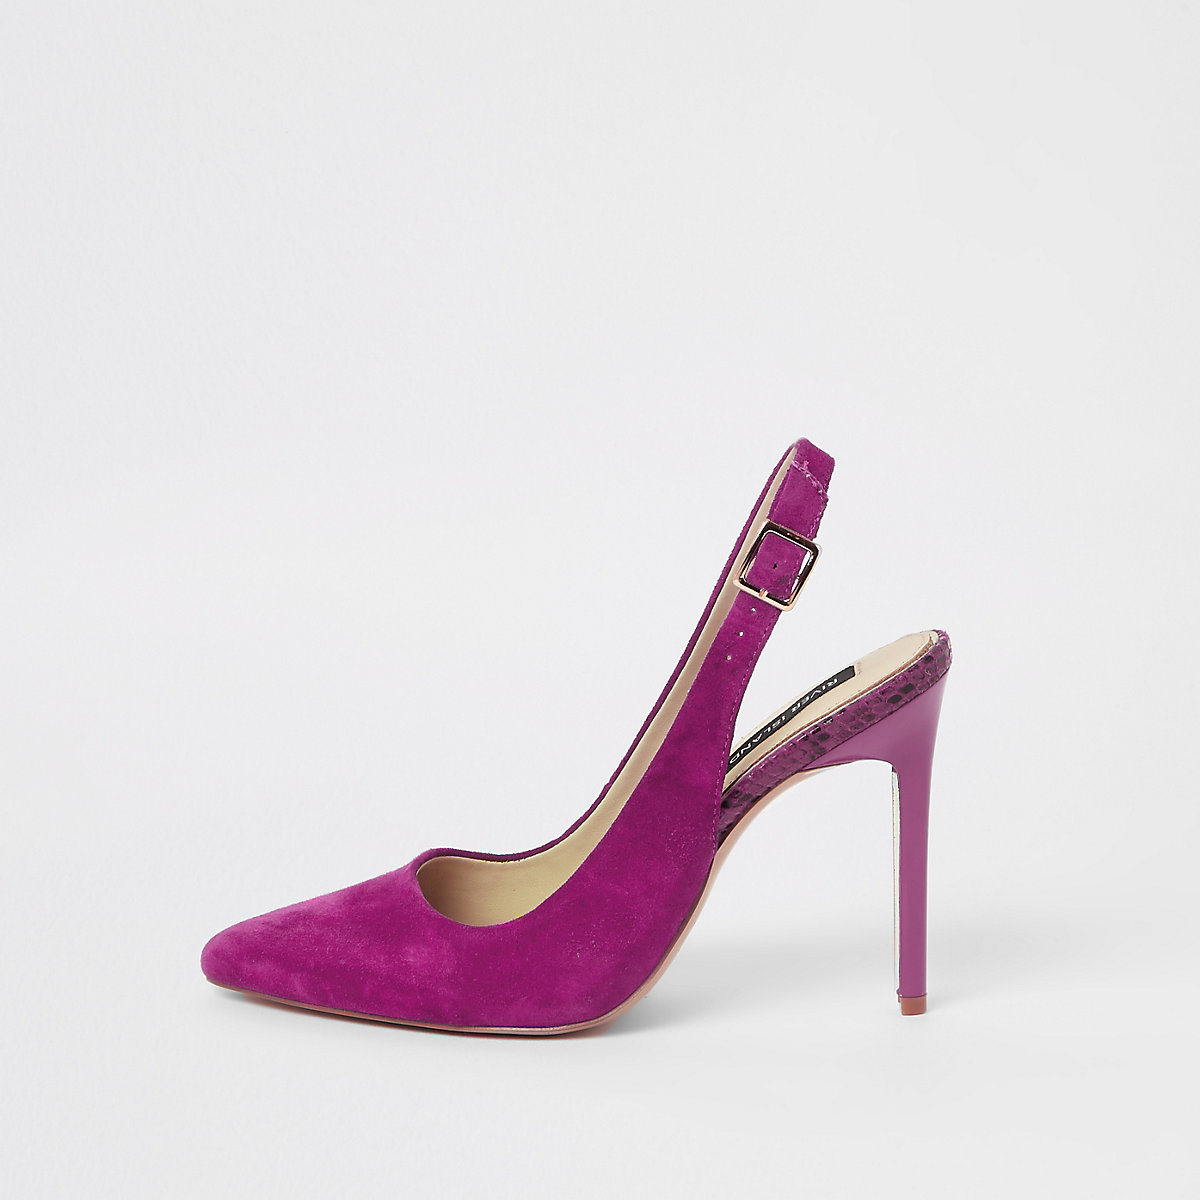 Pink pointed toe slingback pumps